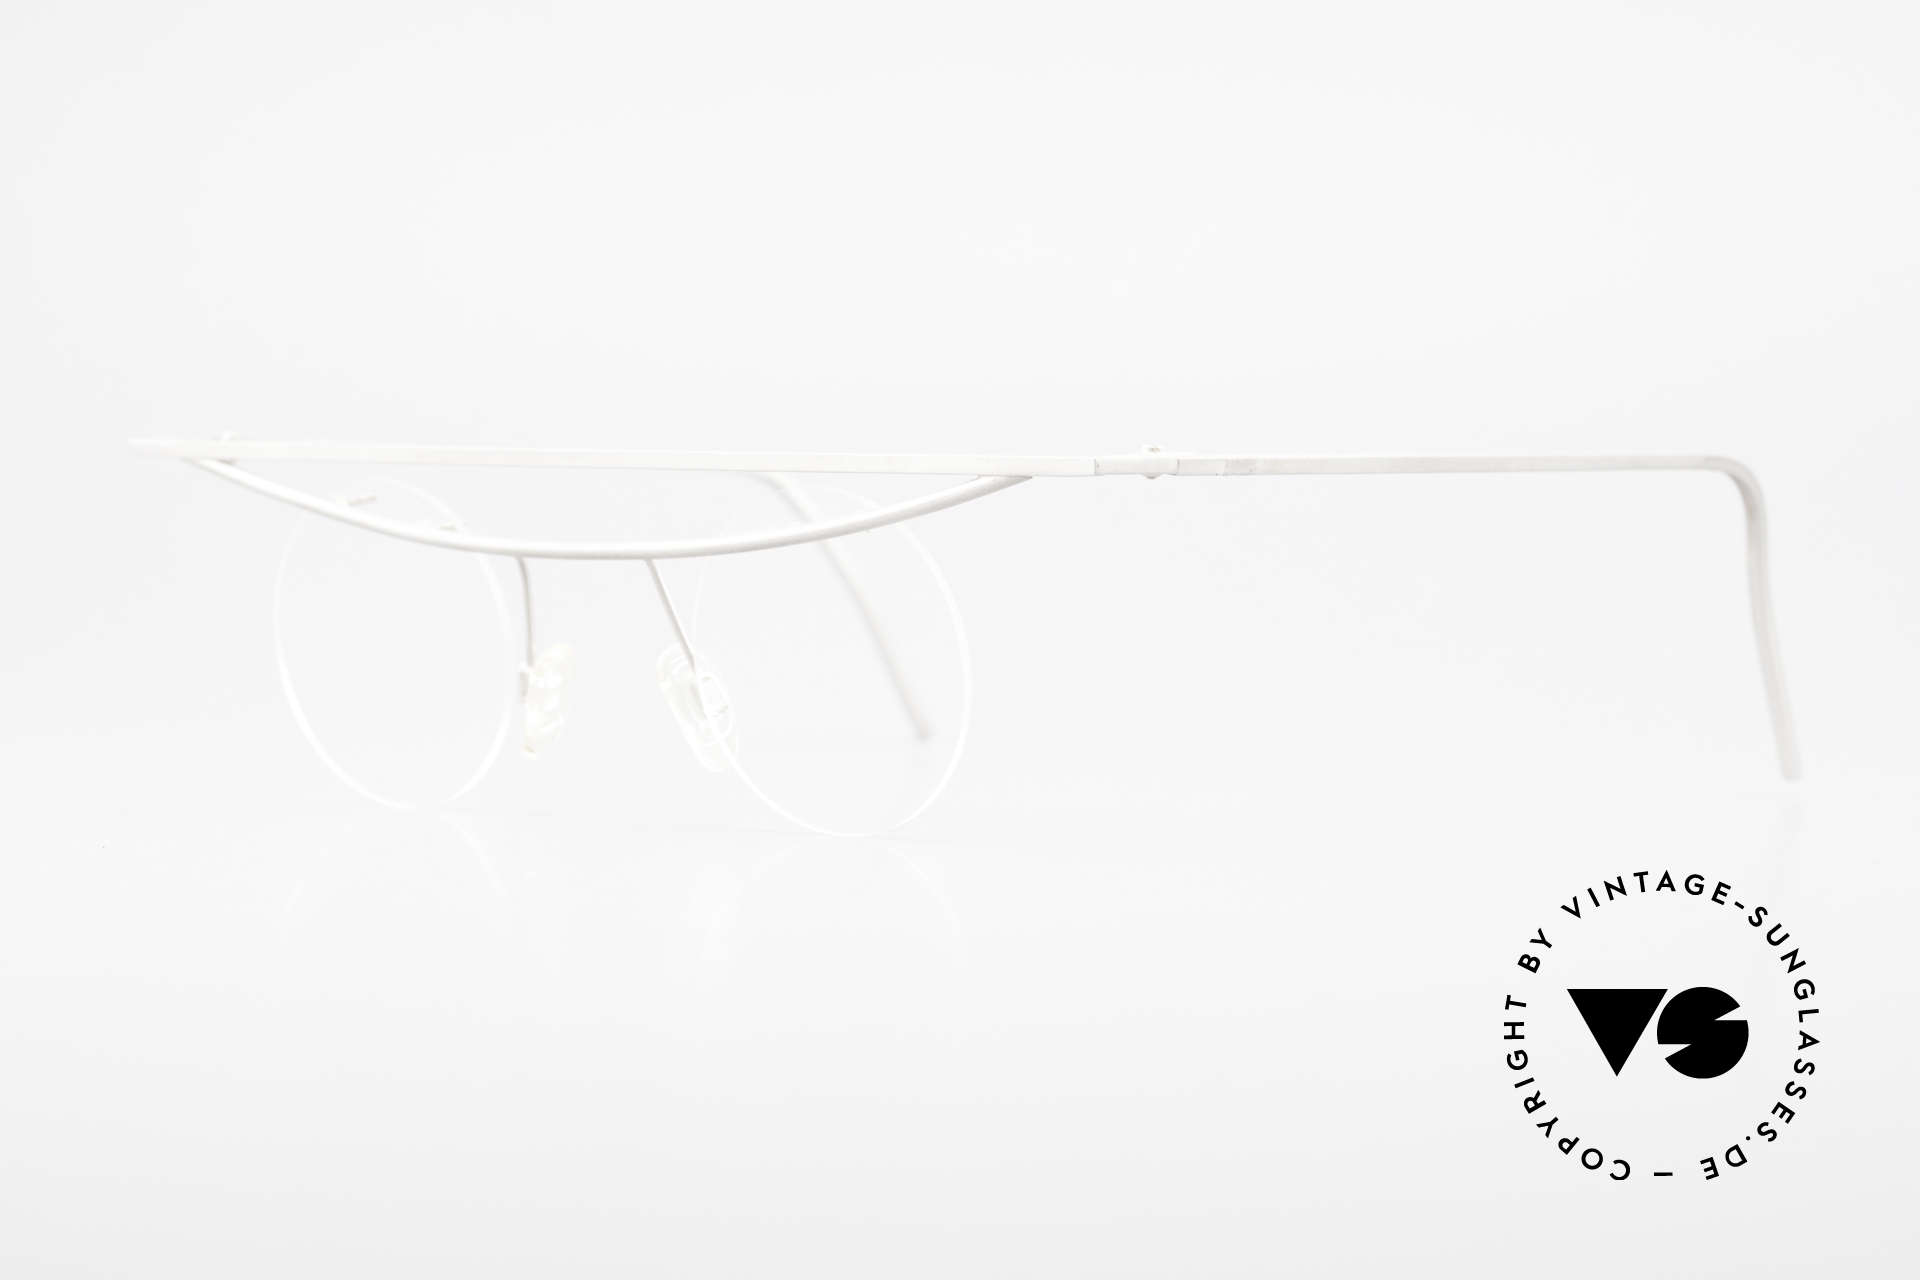 B. Angeletti Cesna Vintage Architect's Glasses XL, Breuer is famous for the Wassily Chair (Bauhaus style), Made for Men and Women